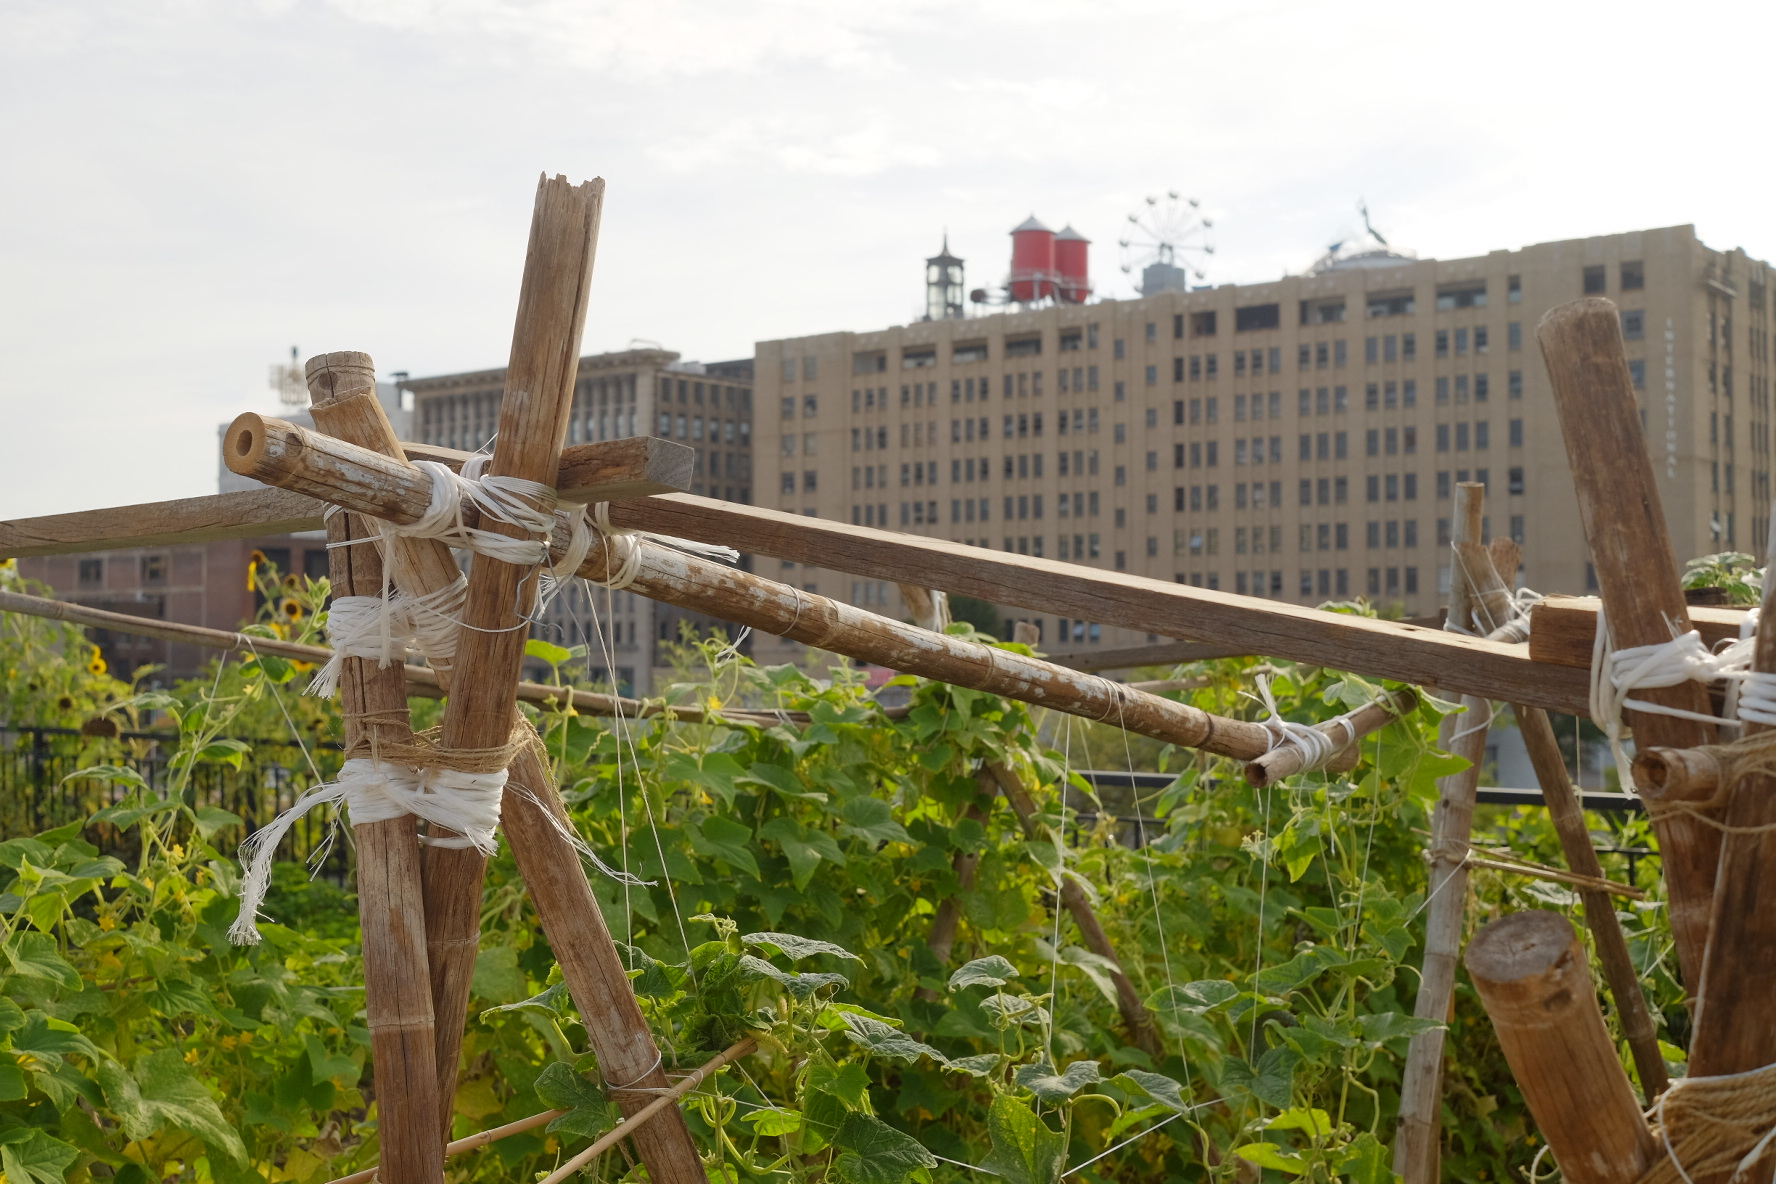 Copy of Constructed wooden trellis on FOOD ROOF Farm with tall green plants and the city museum rooftop in background